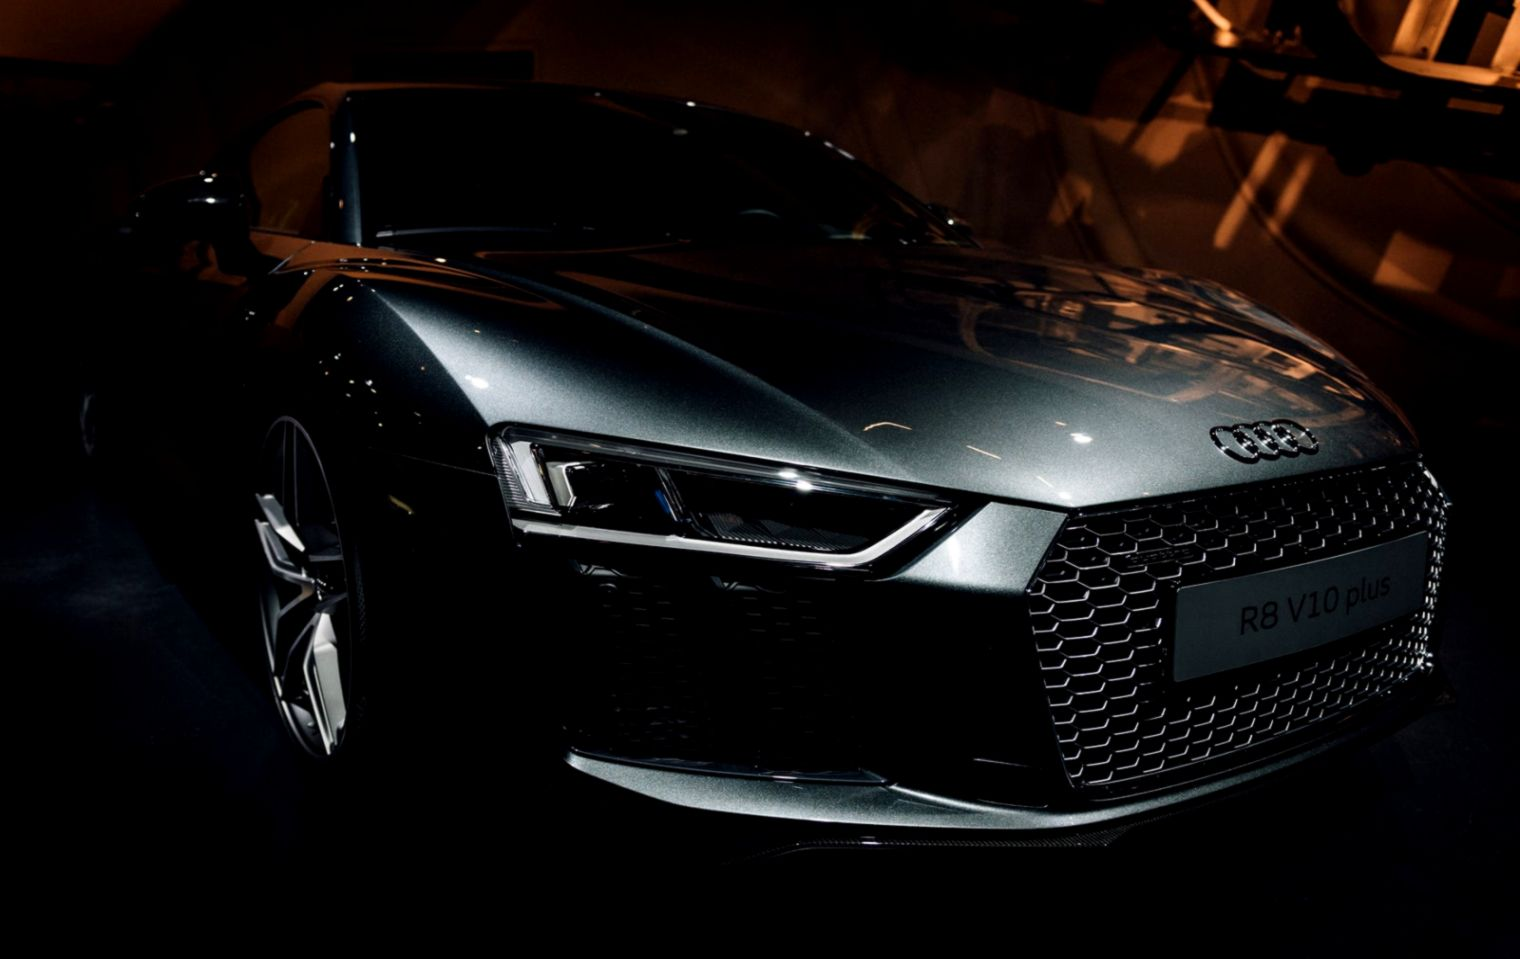 Audi R8 Hd Wallpaper Posted By Zoey Anderson